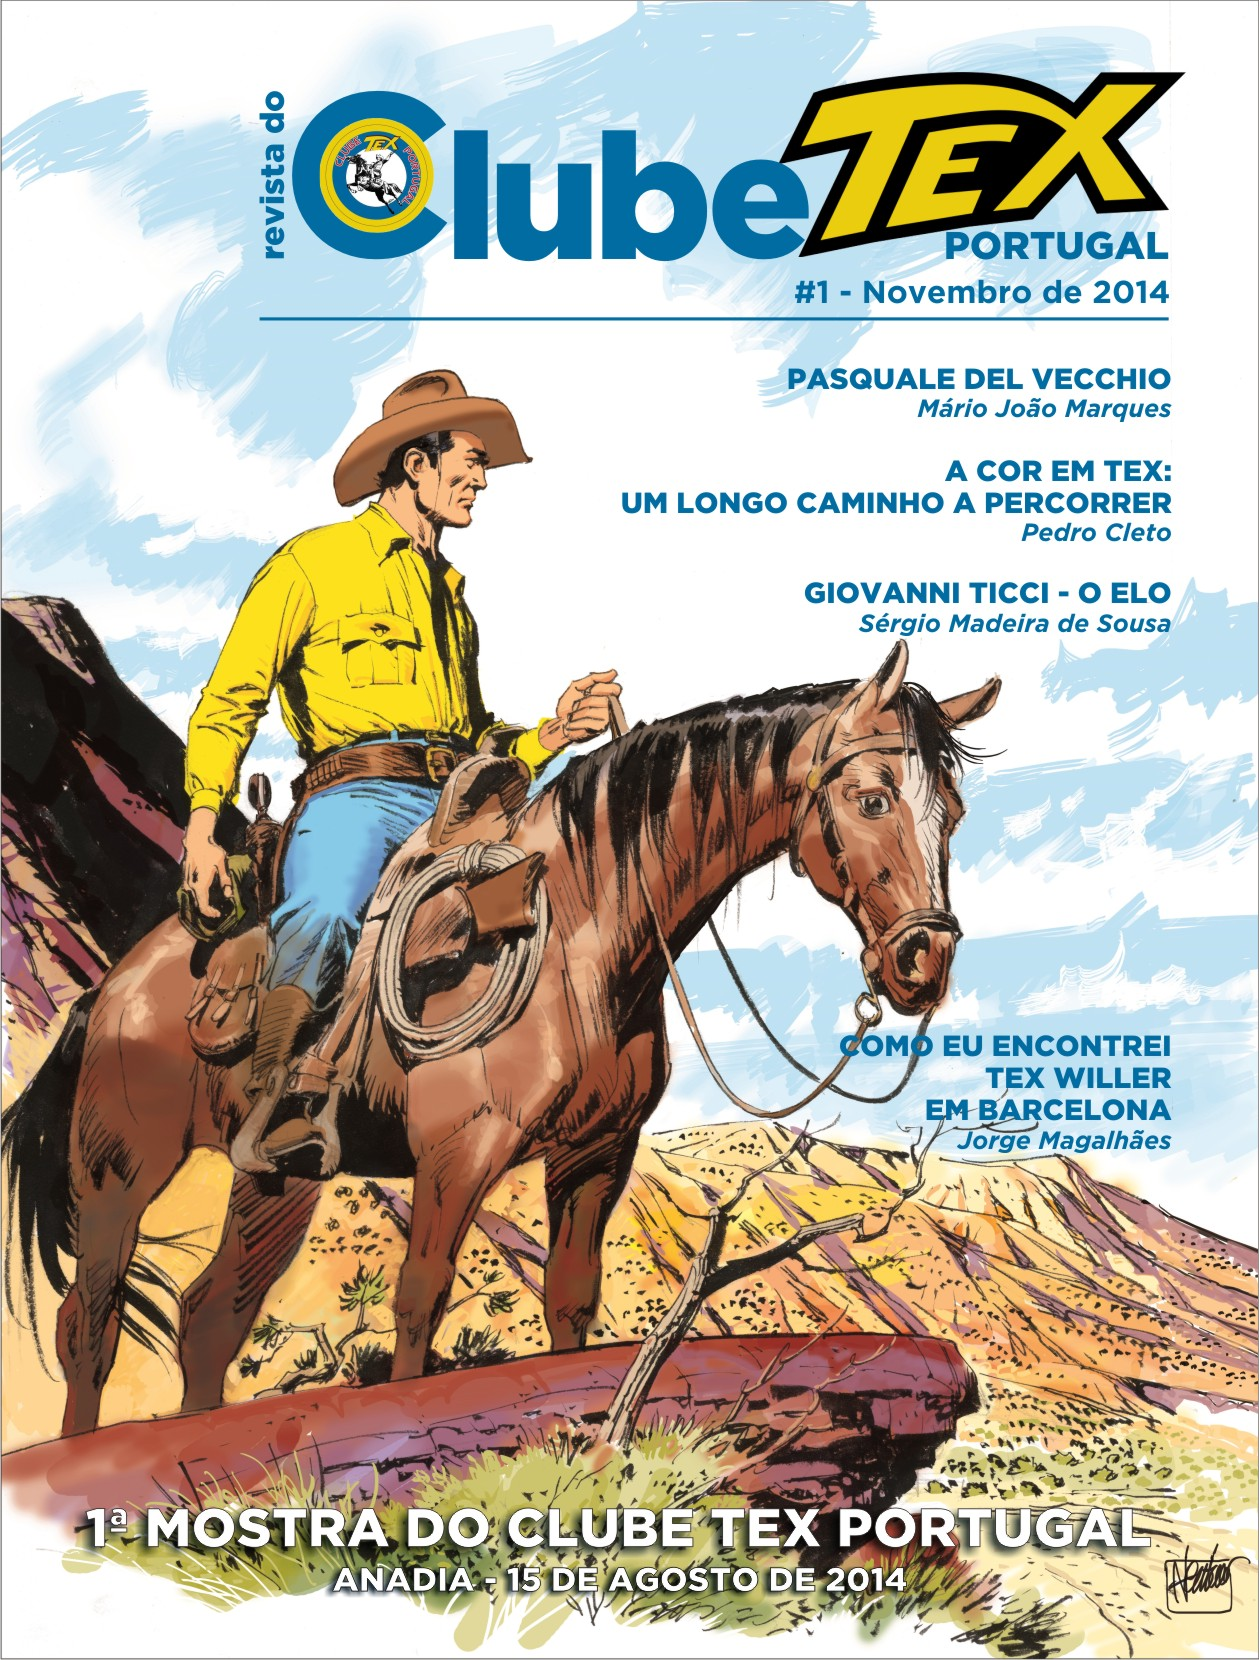 da revista do Clube Tex Portugal da revista do Clube Tex Portugal